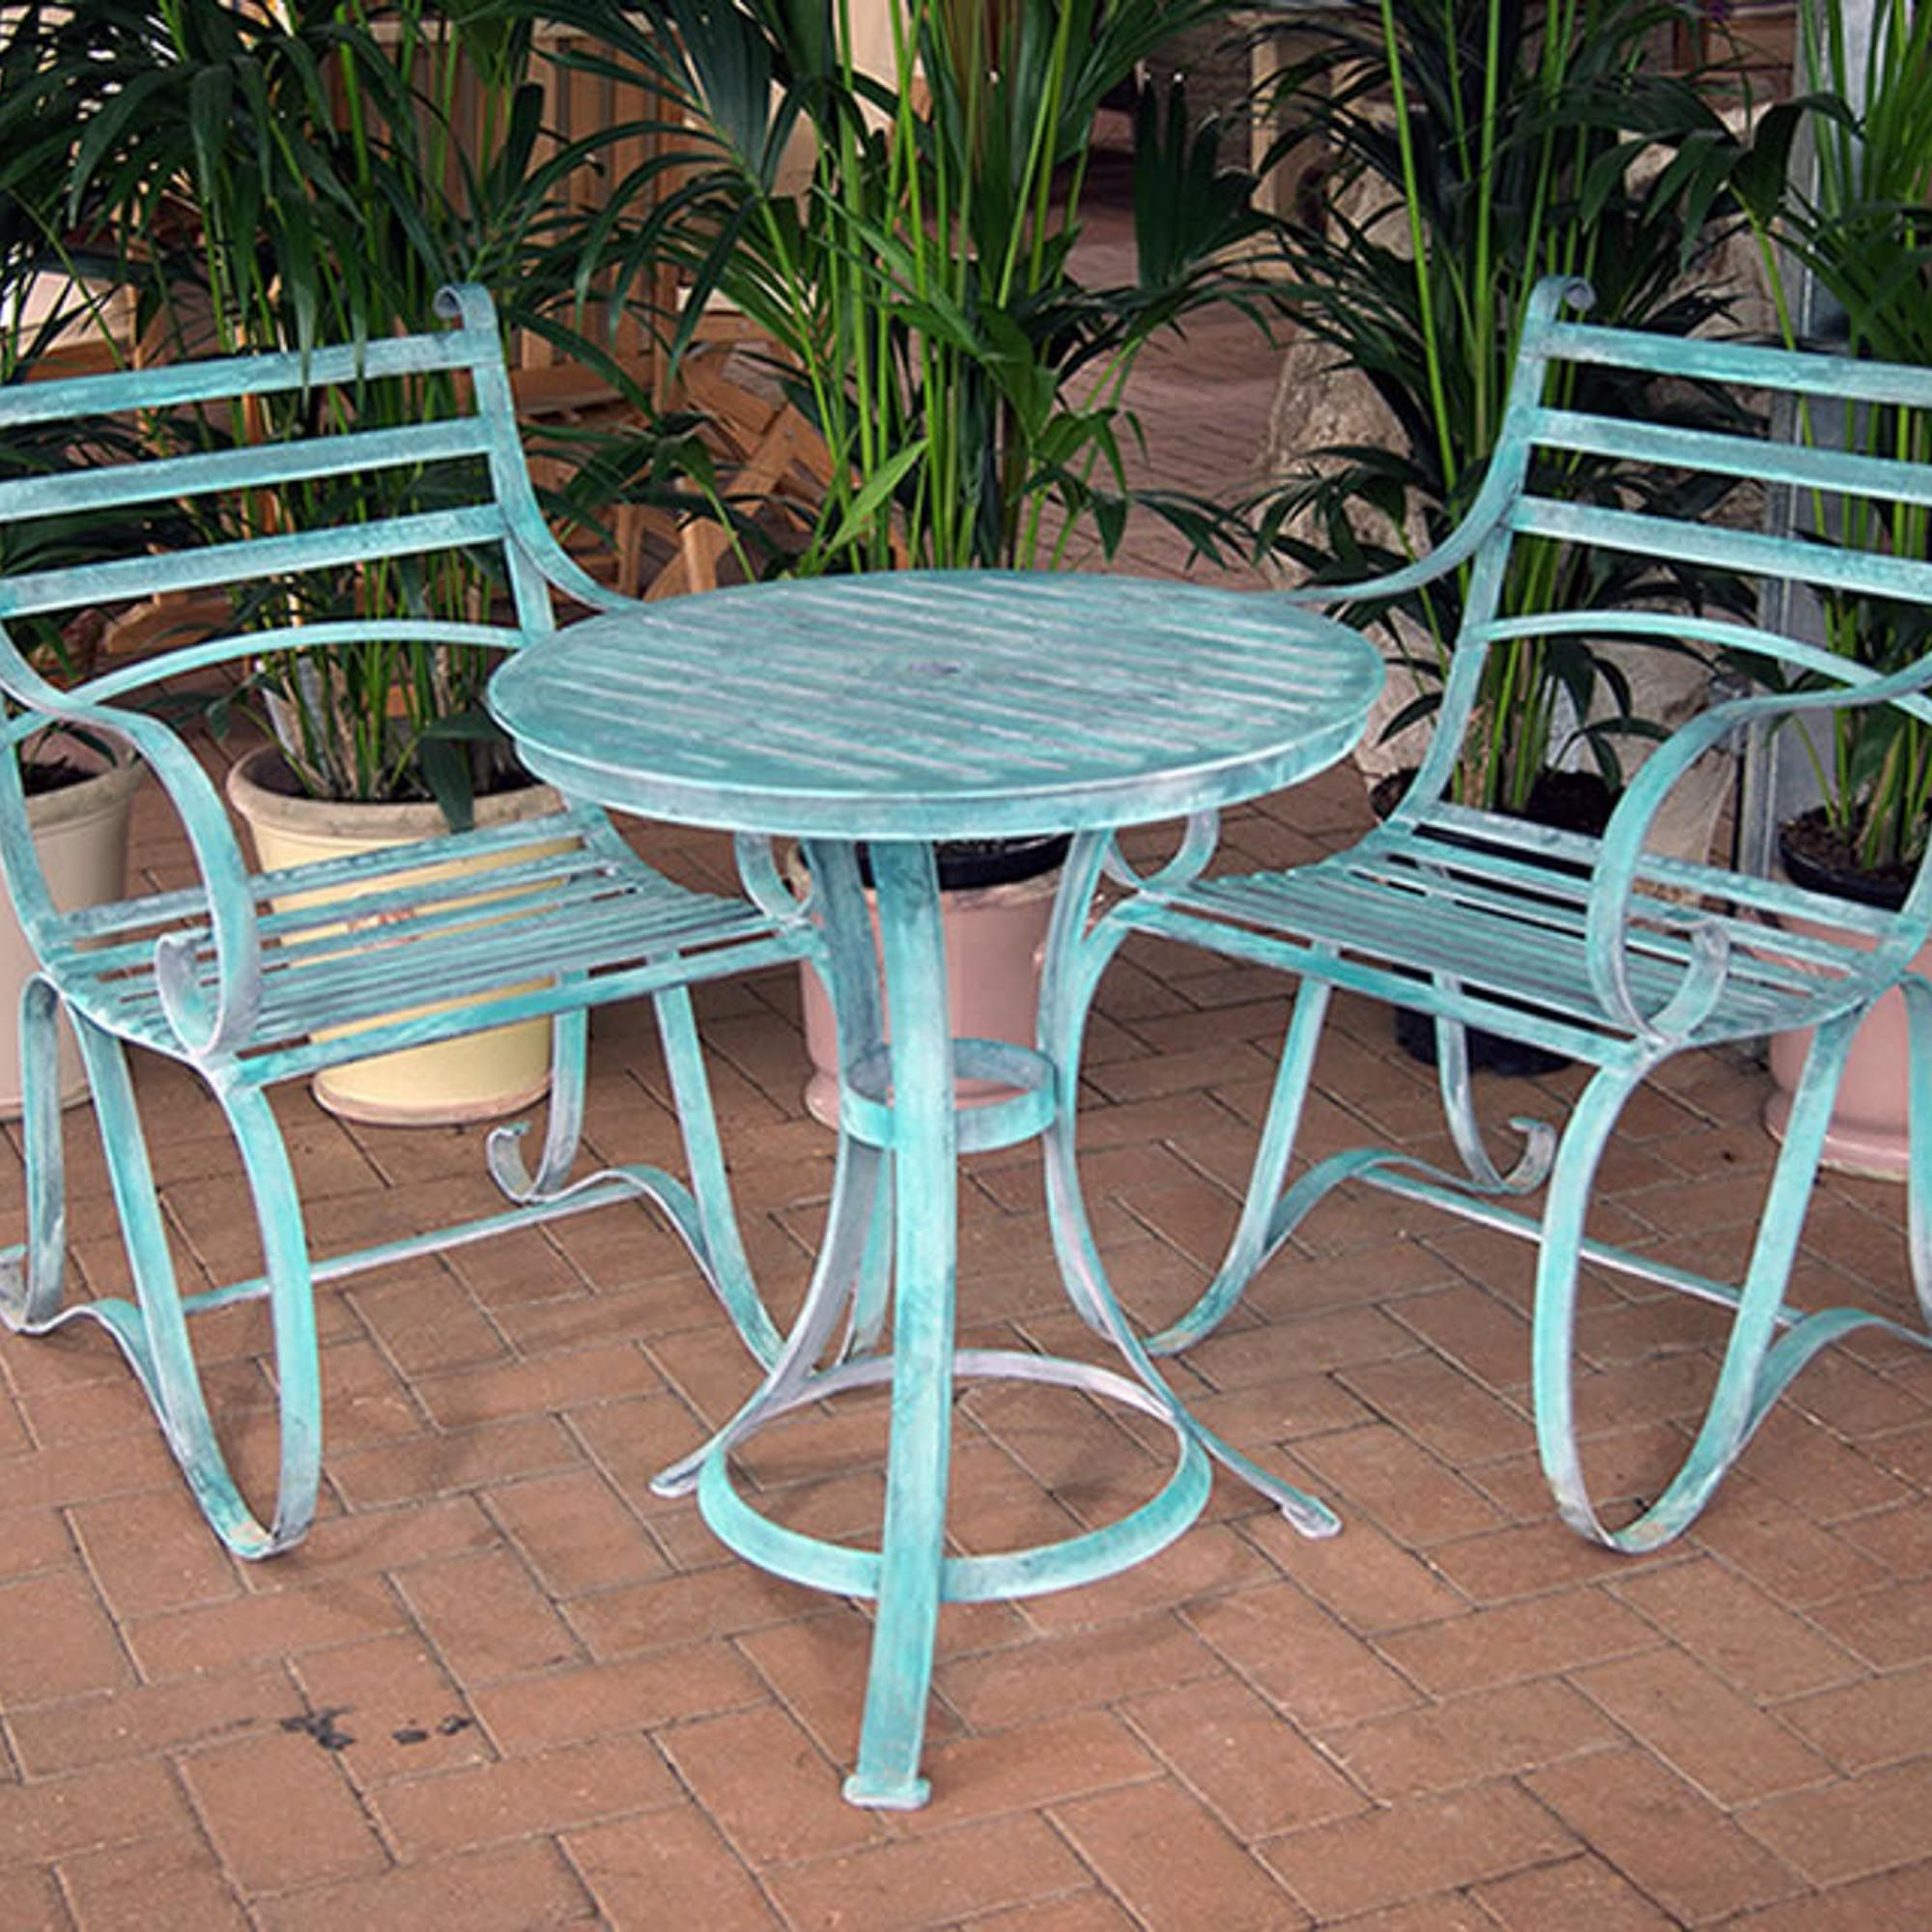 Iron Garden Table And Chairs Part - 24: Verdigris Metal Garden Bistro Set For Two